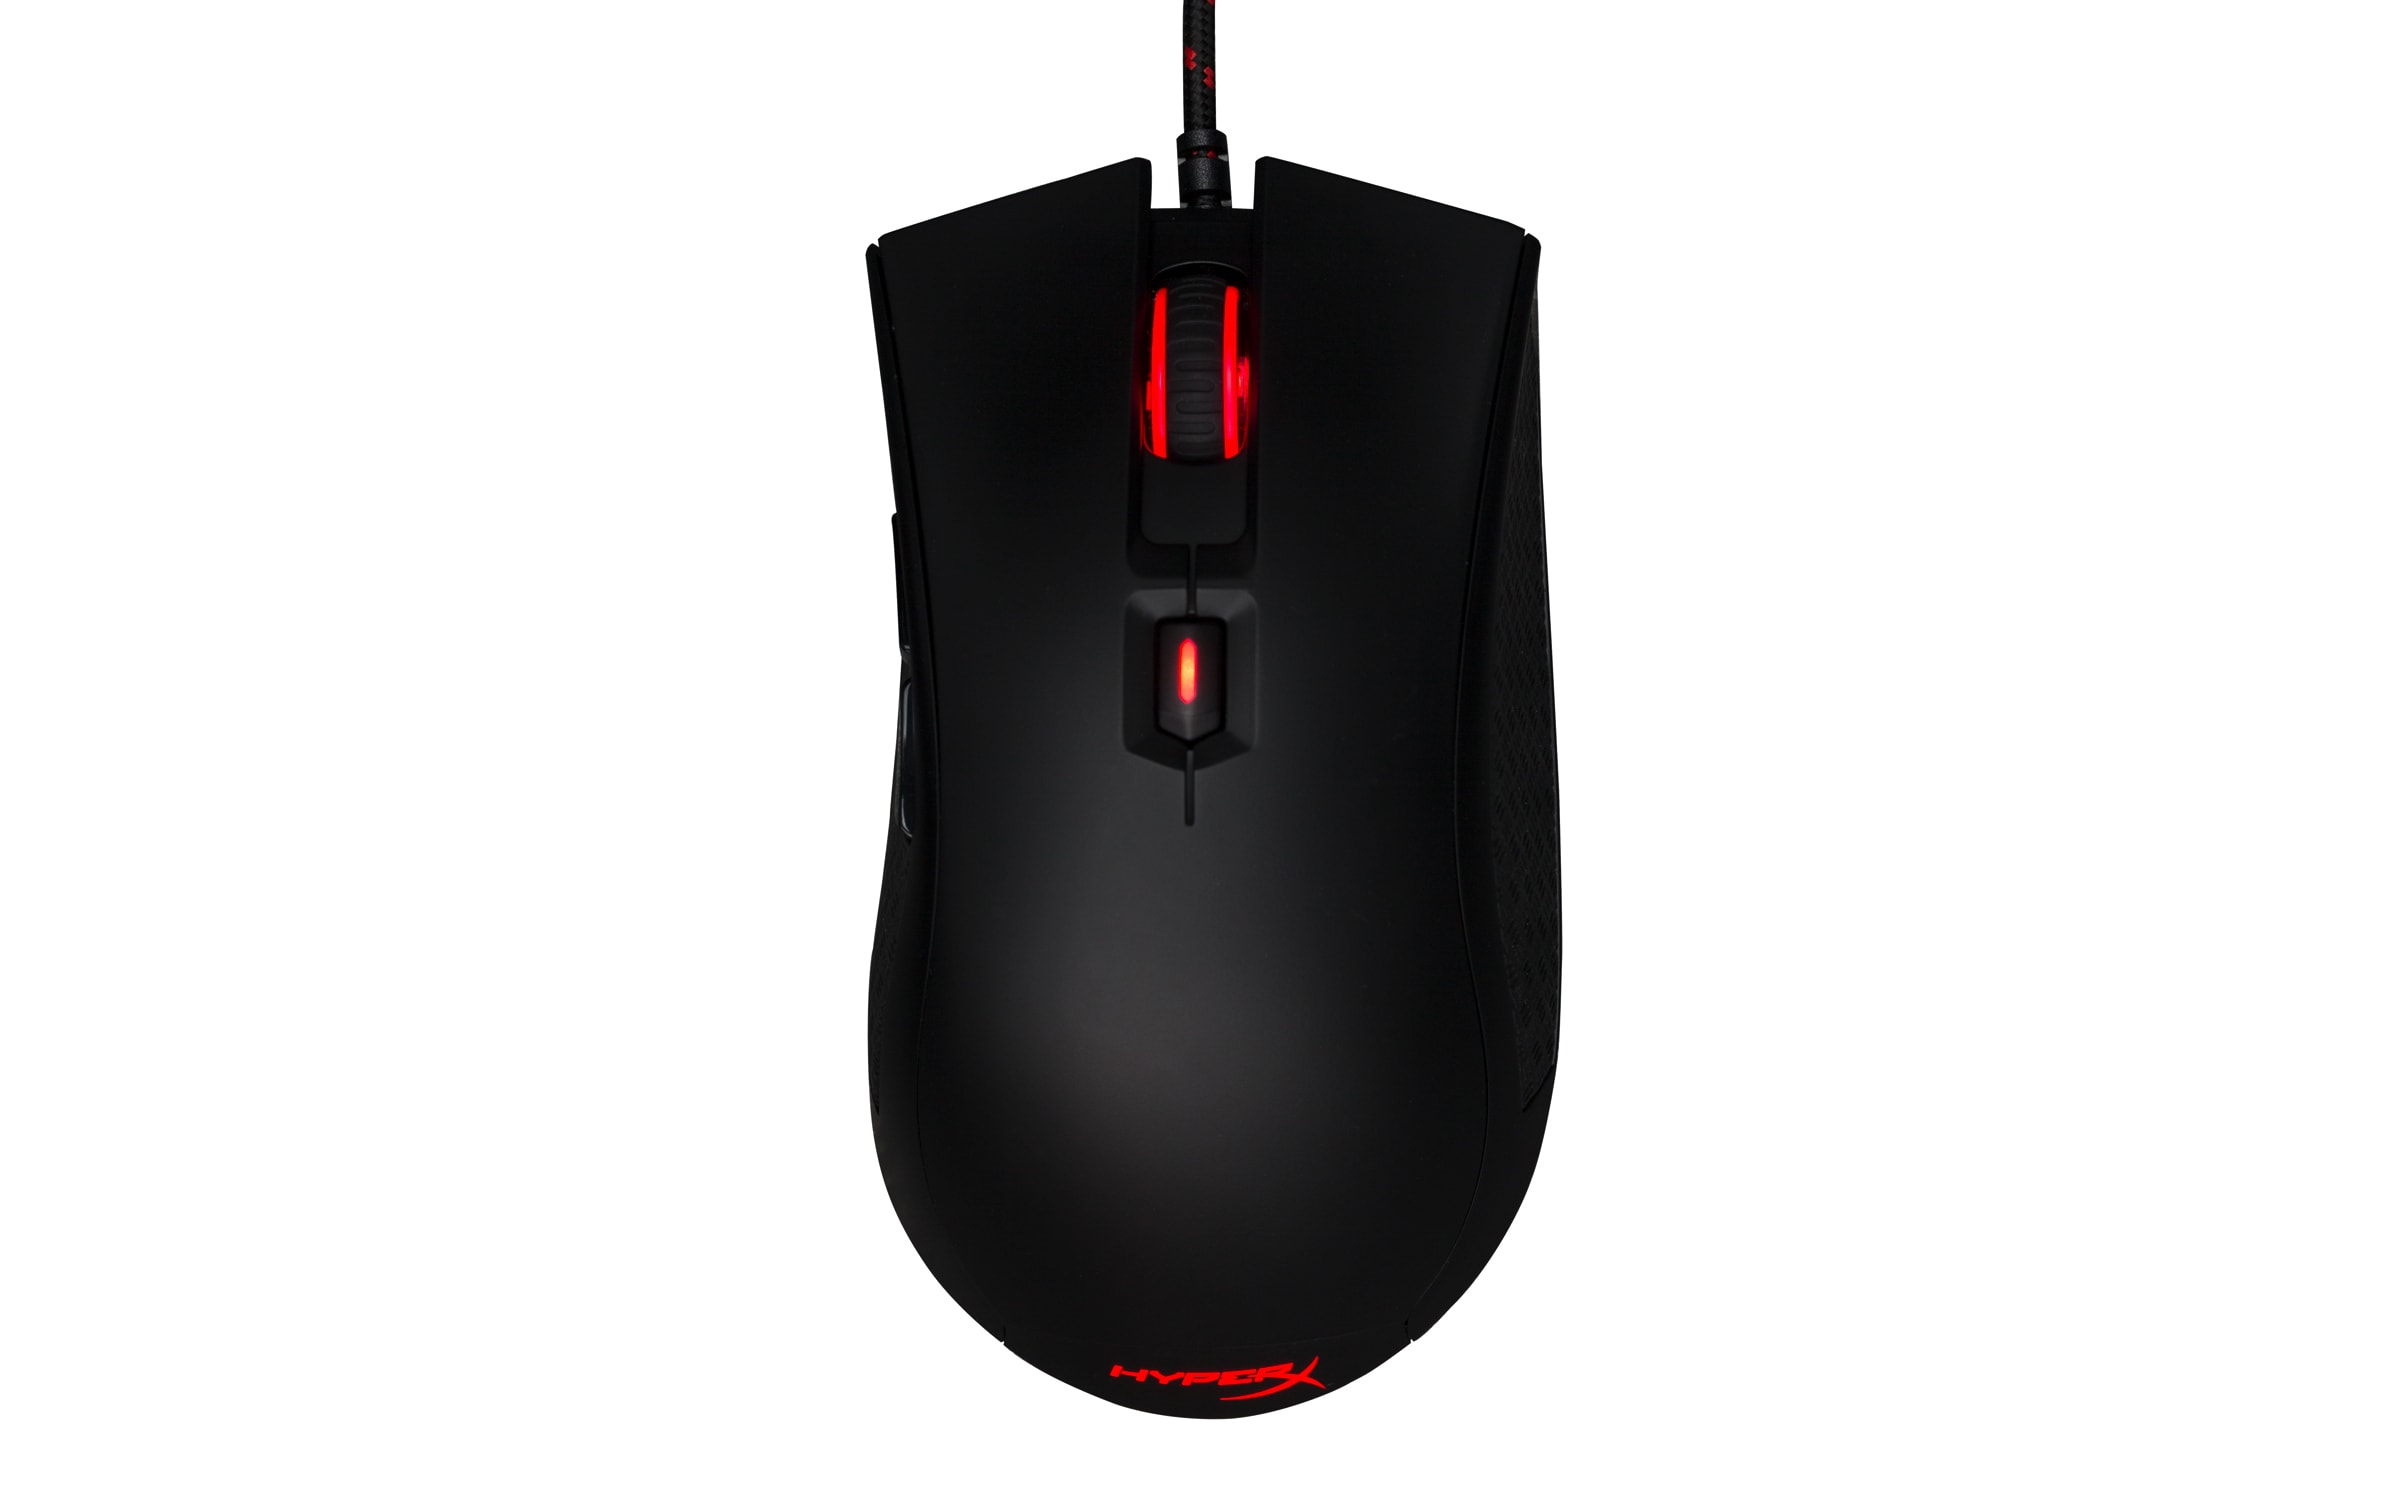 HyperX PULSEFIRE FPS Gaming Mouse - Souris PC HyperX - Cybertek.fr - 3